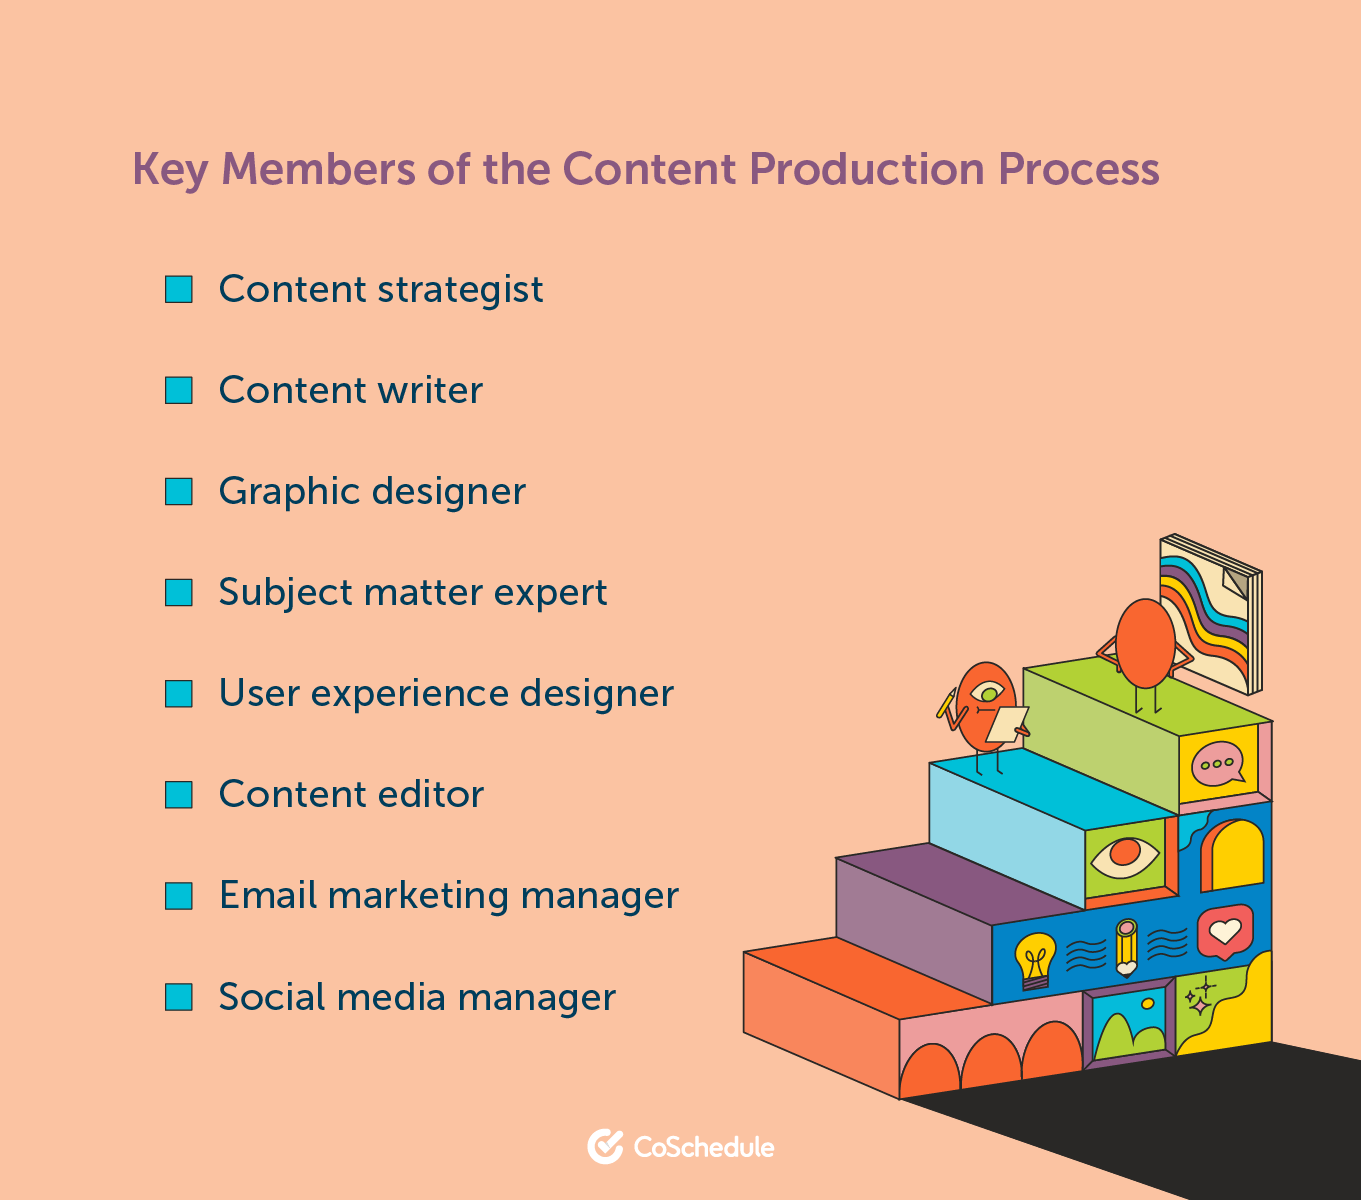 Key members of the content production process